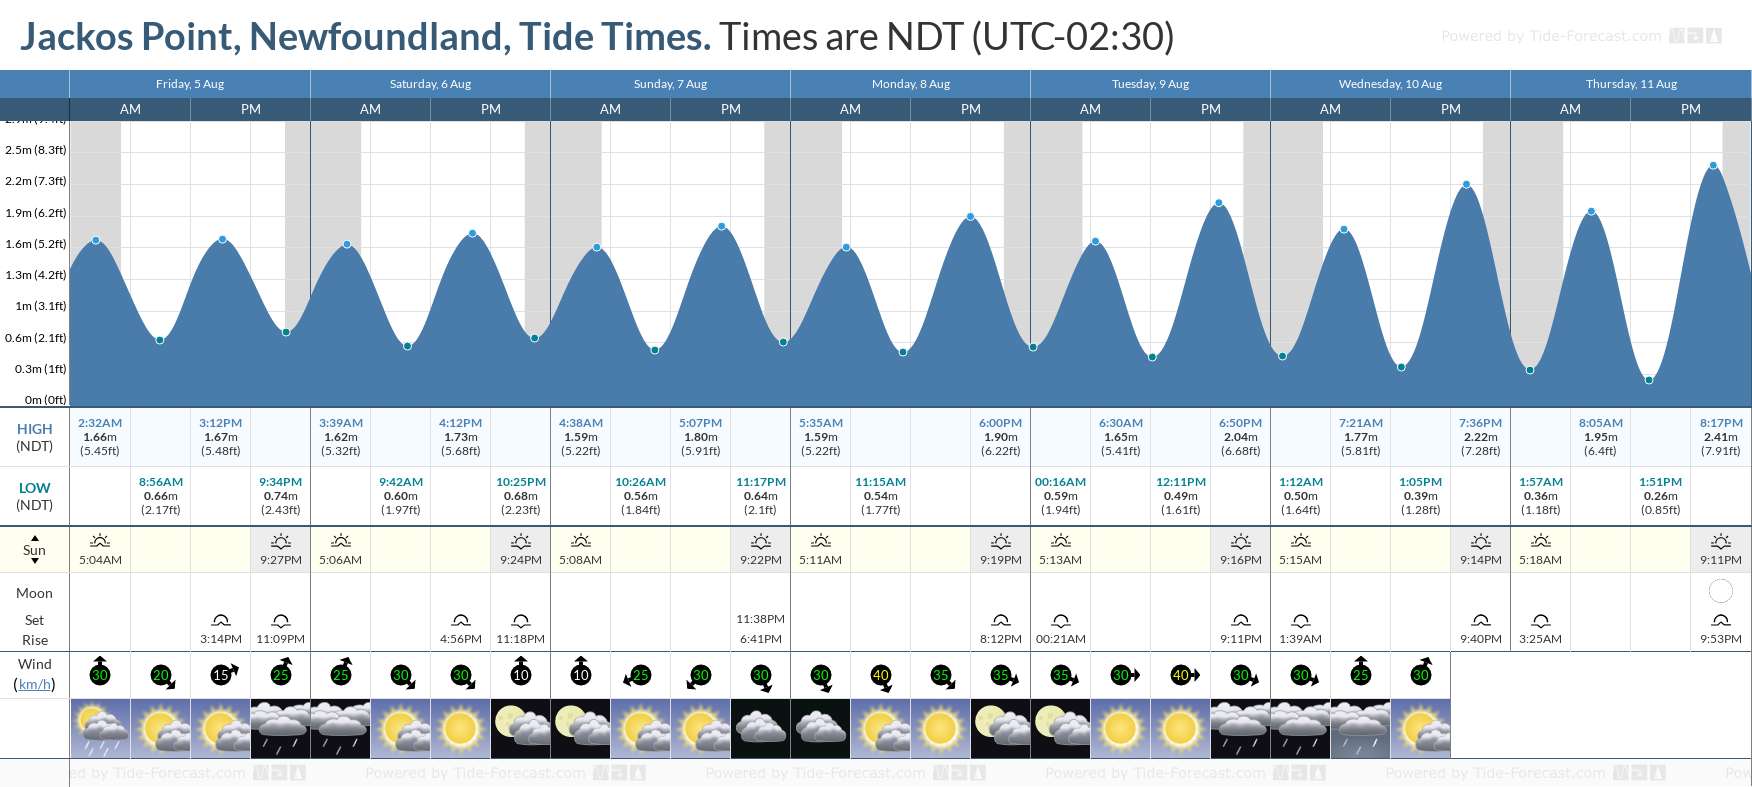 Jackos Point, Newfoundland Tide Chart including high and low tide tide times for the next 7 days